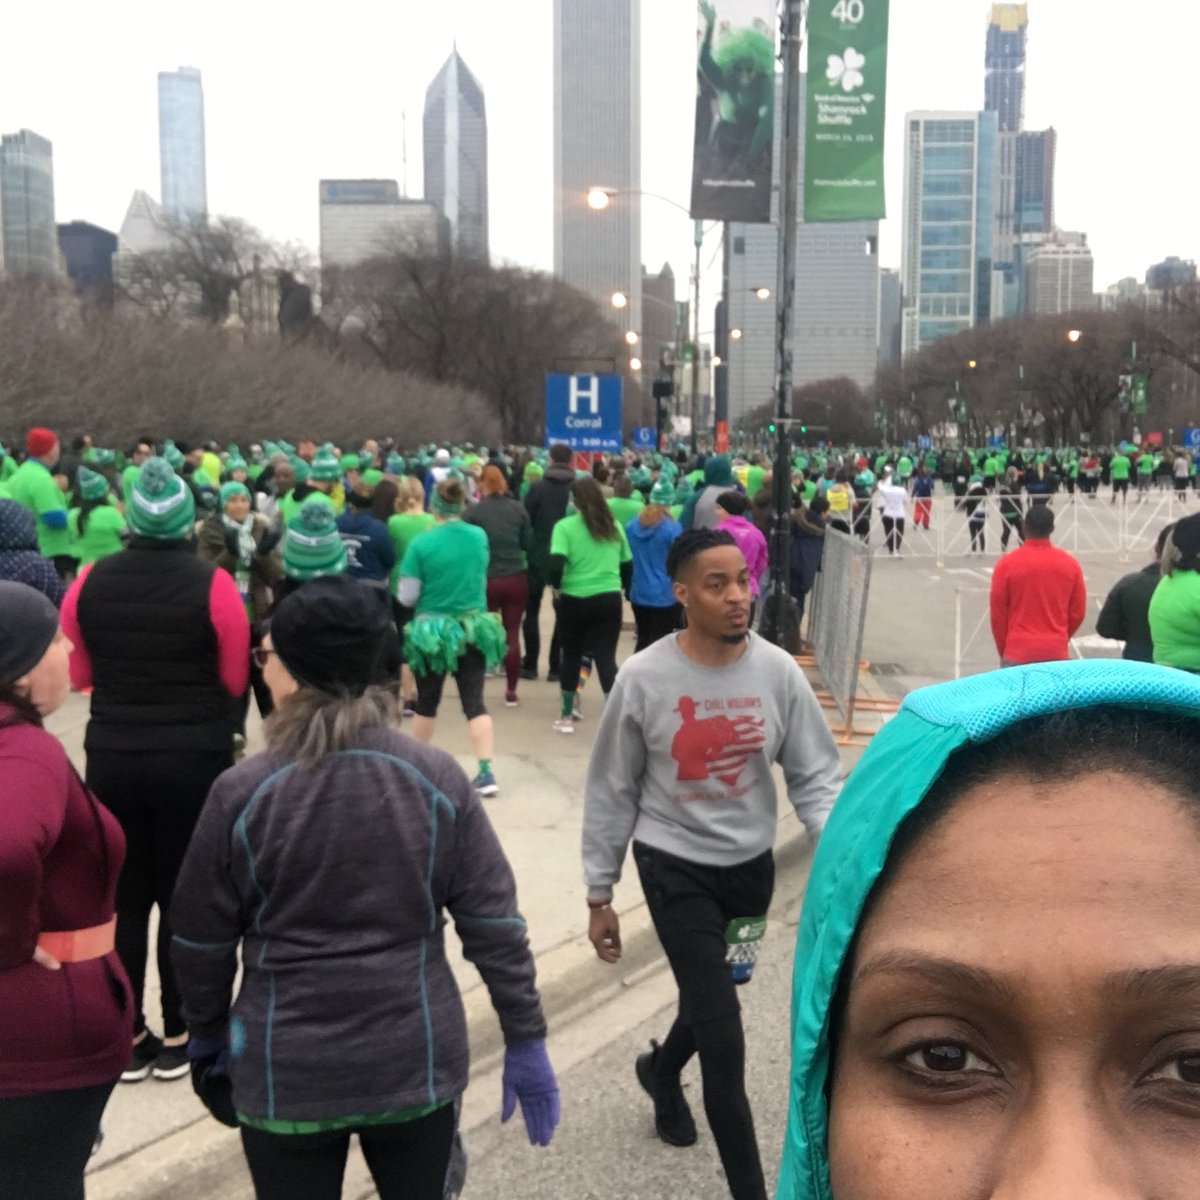 Getting ready to #ShamrockShuffle #Chi #chicago good luck runners #LowLevelAlert